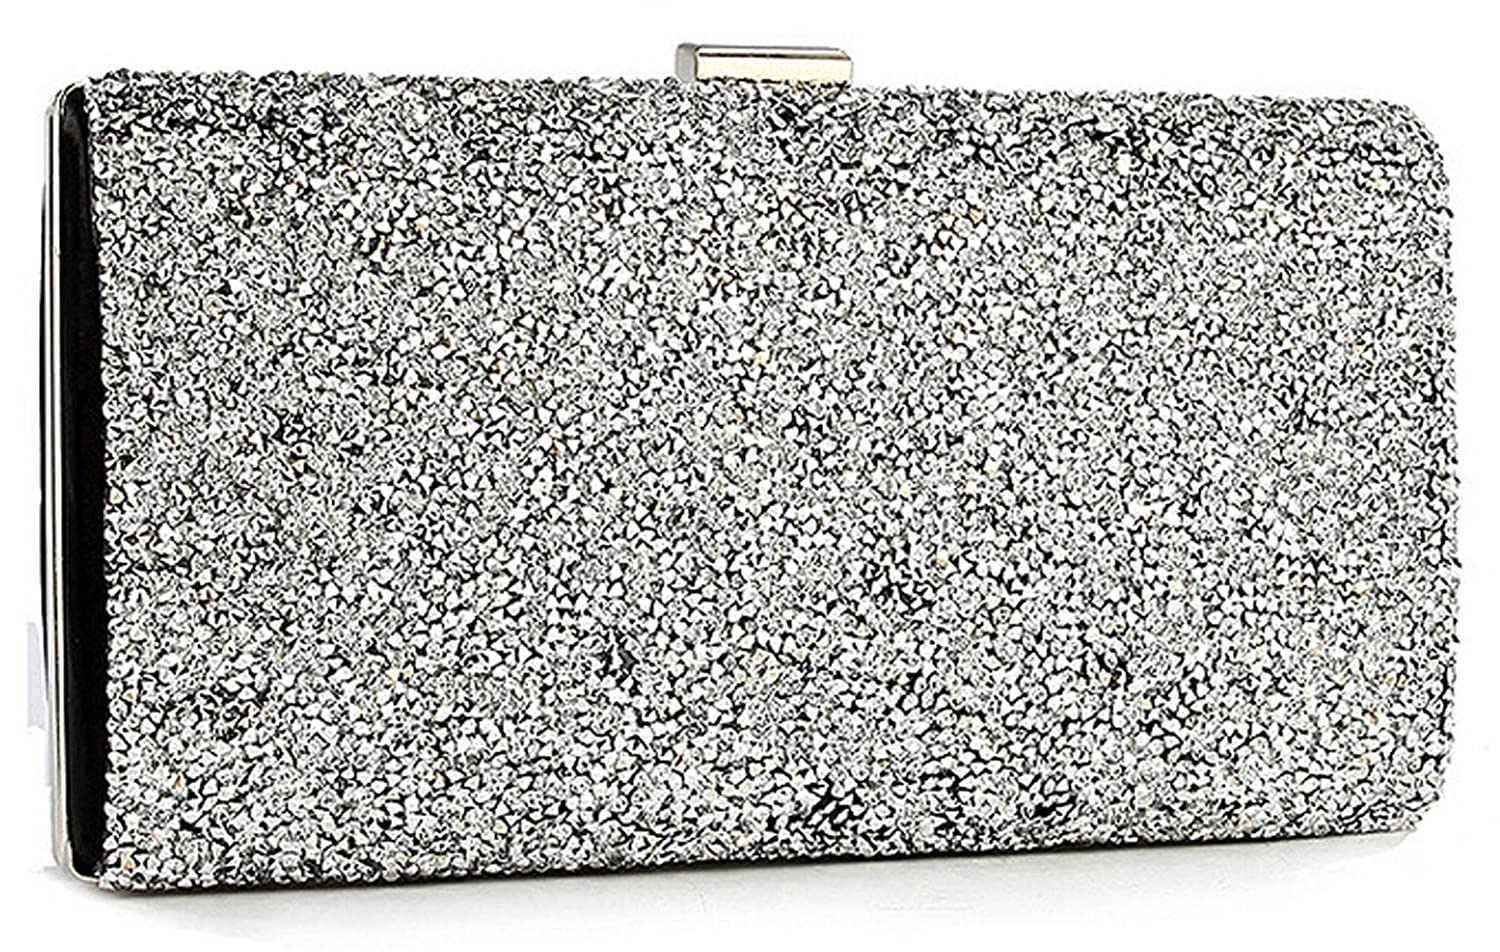 a987acffa2 MATERIALS: High quality pu, designed with rhinestone on one side, another  side is slipy. Soft polyester lining. Magnet hook closure, adding the  security of ...